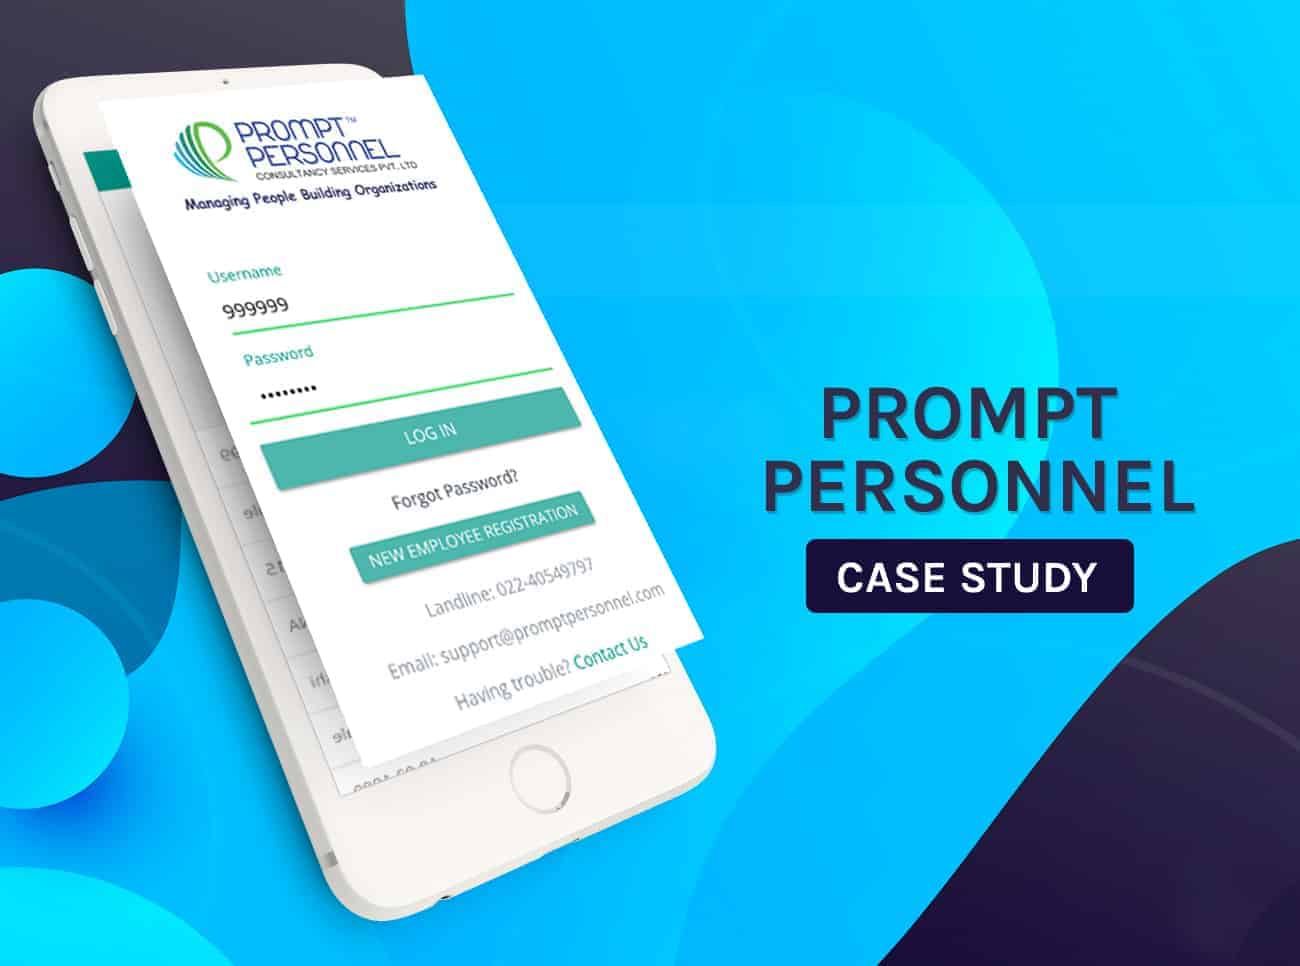 prompt personnel case study